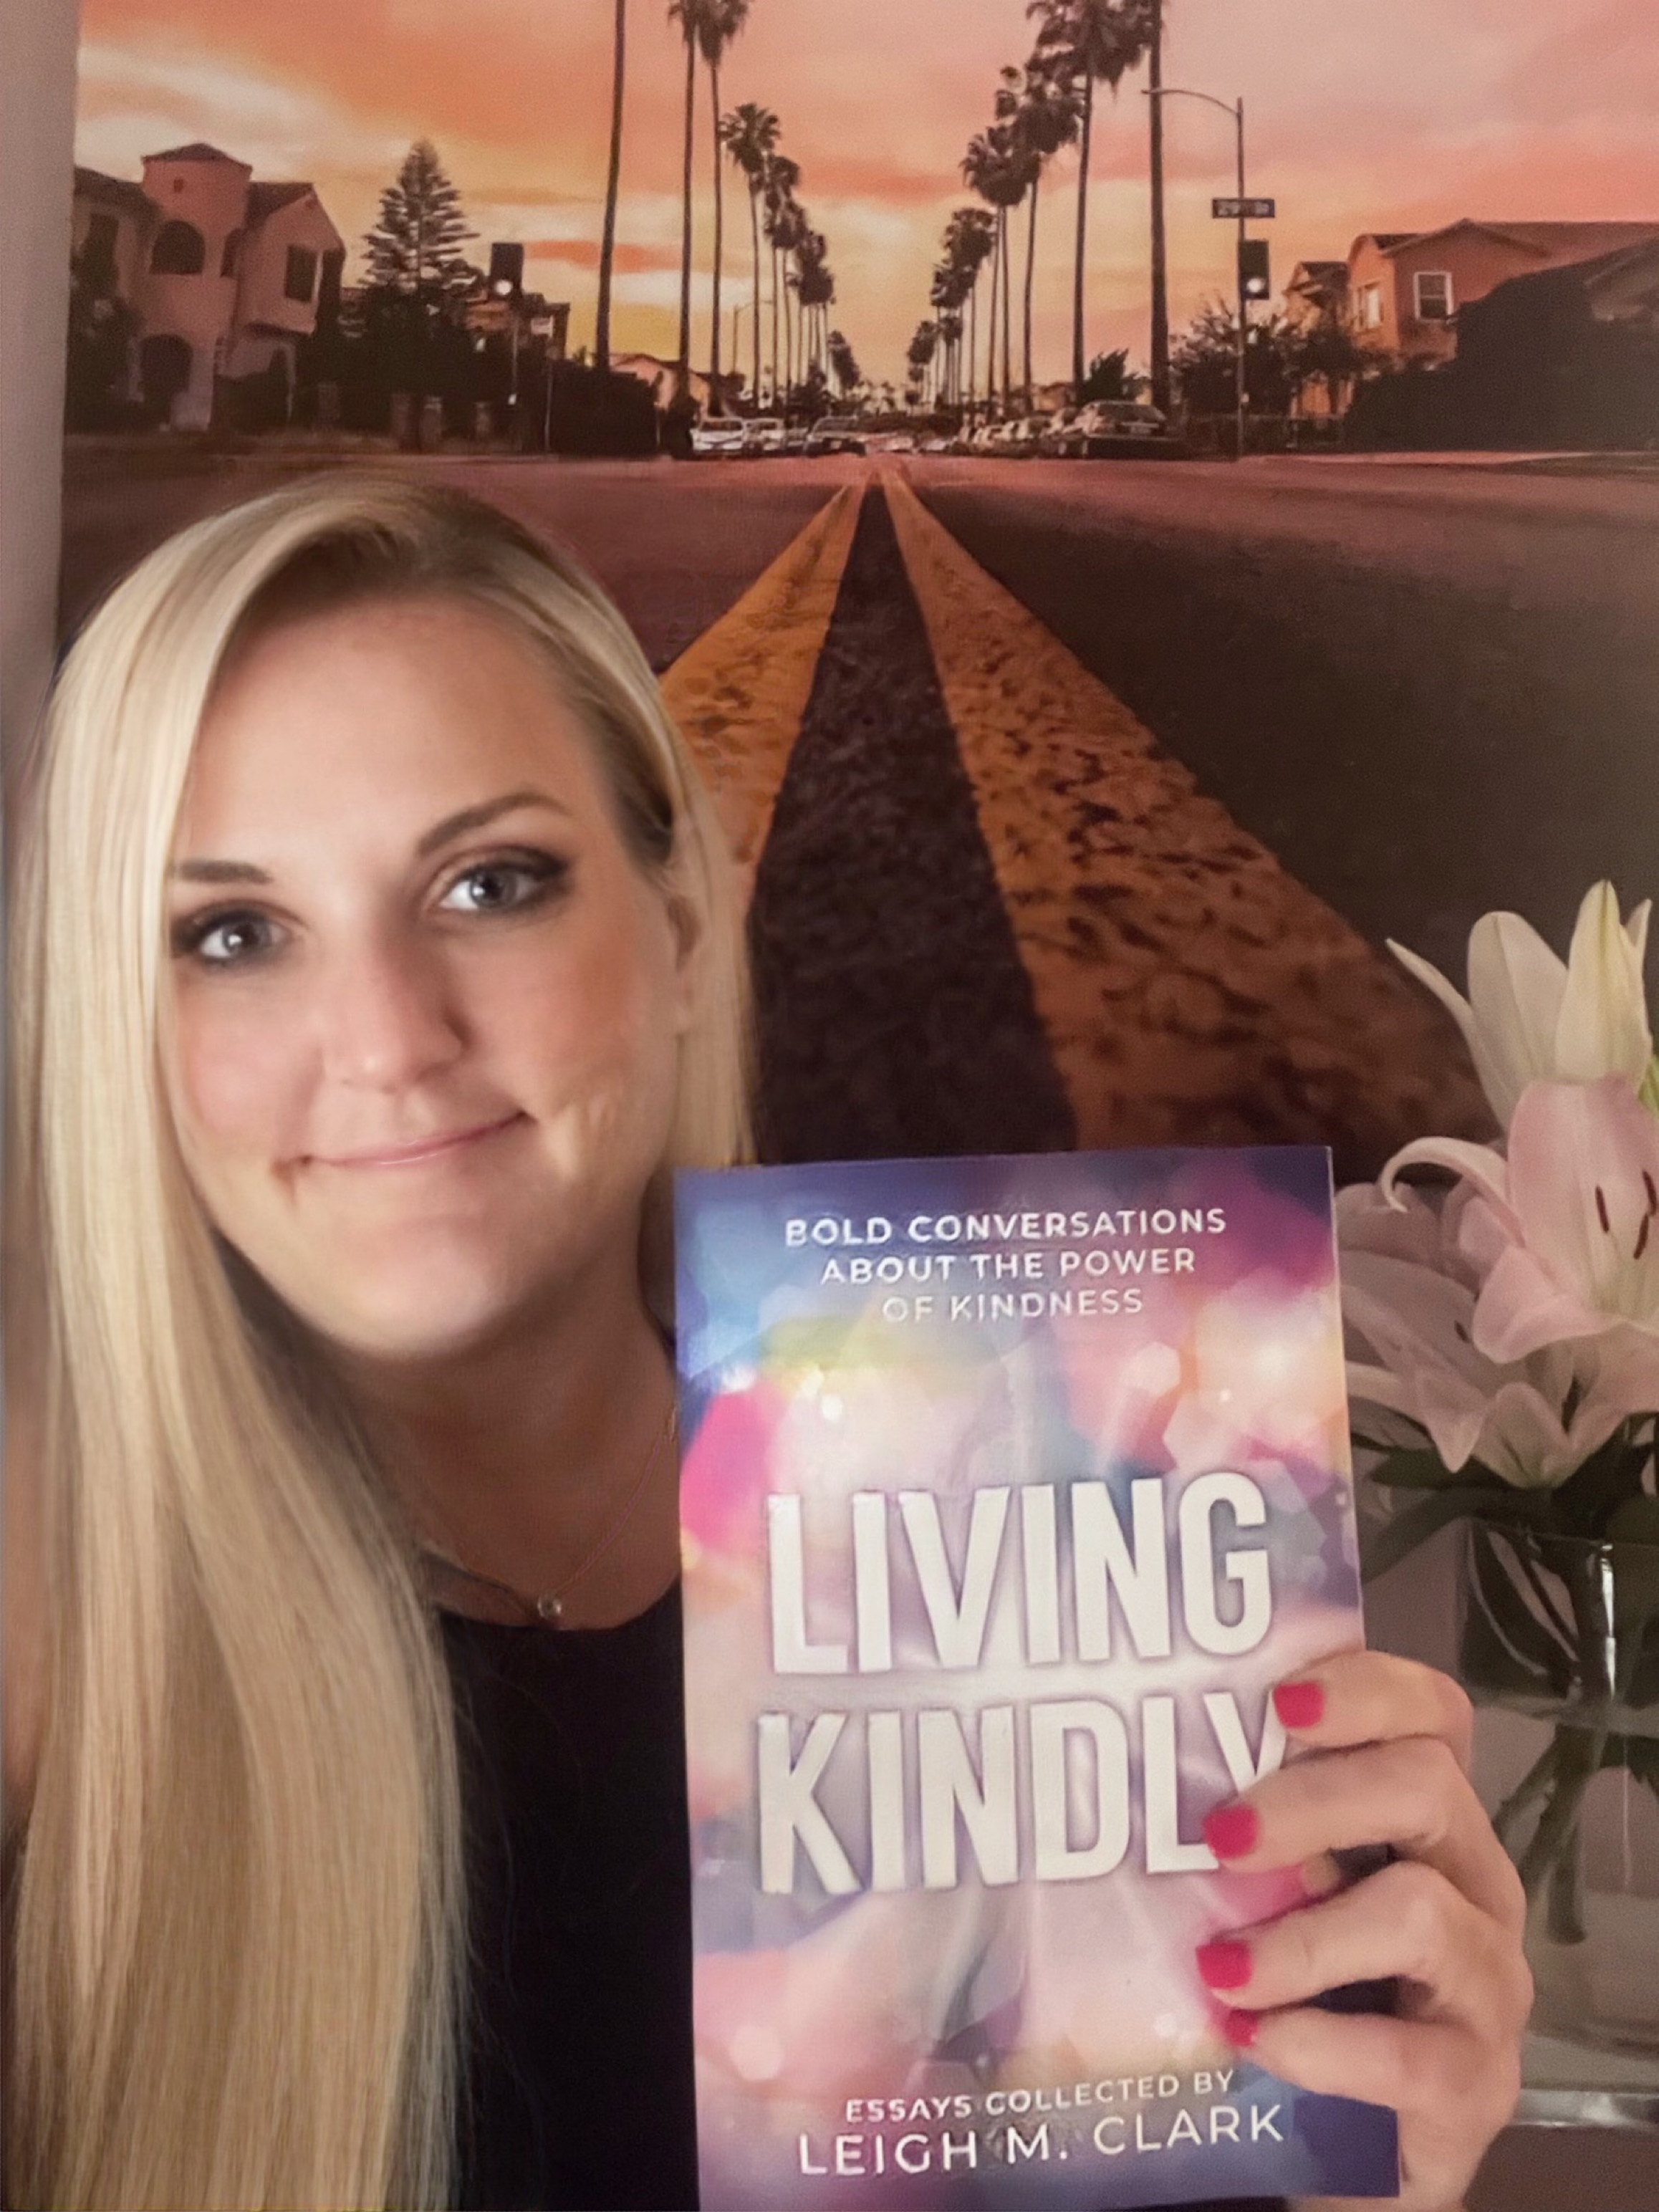 My first book! Living Kindly